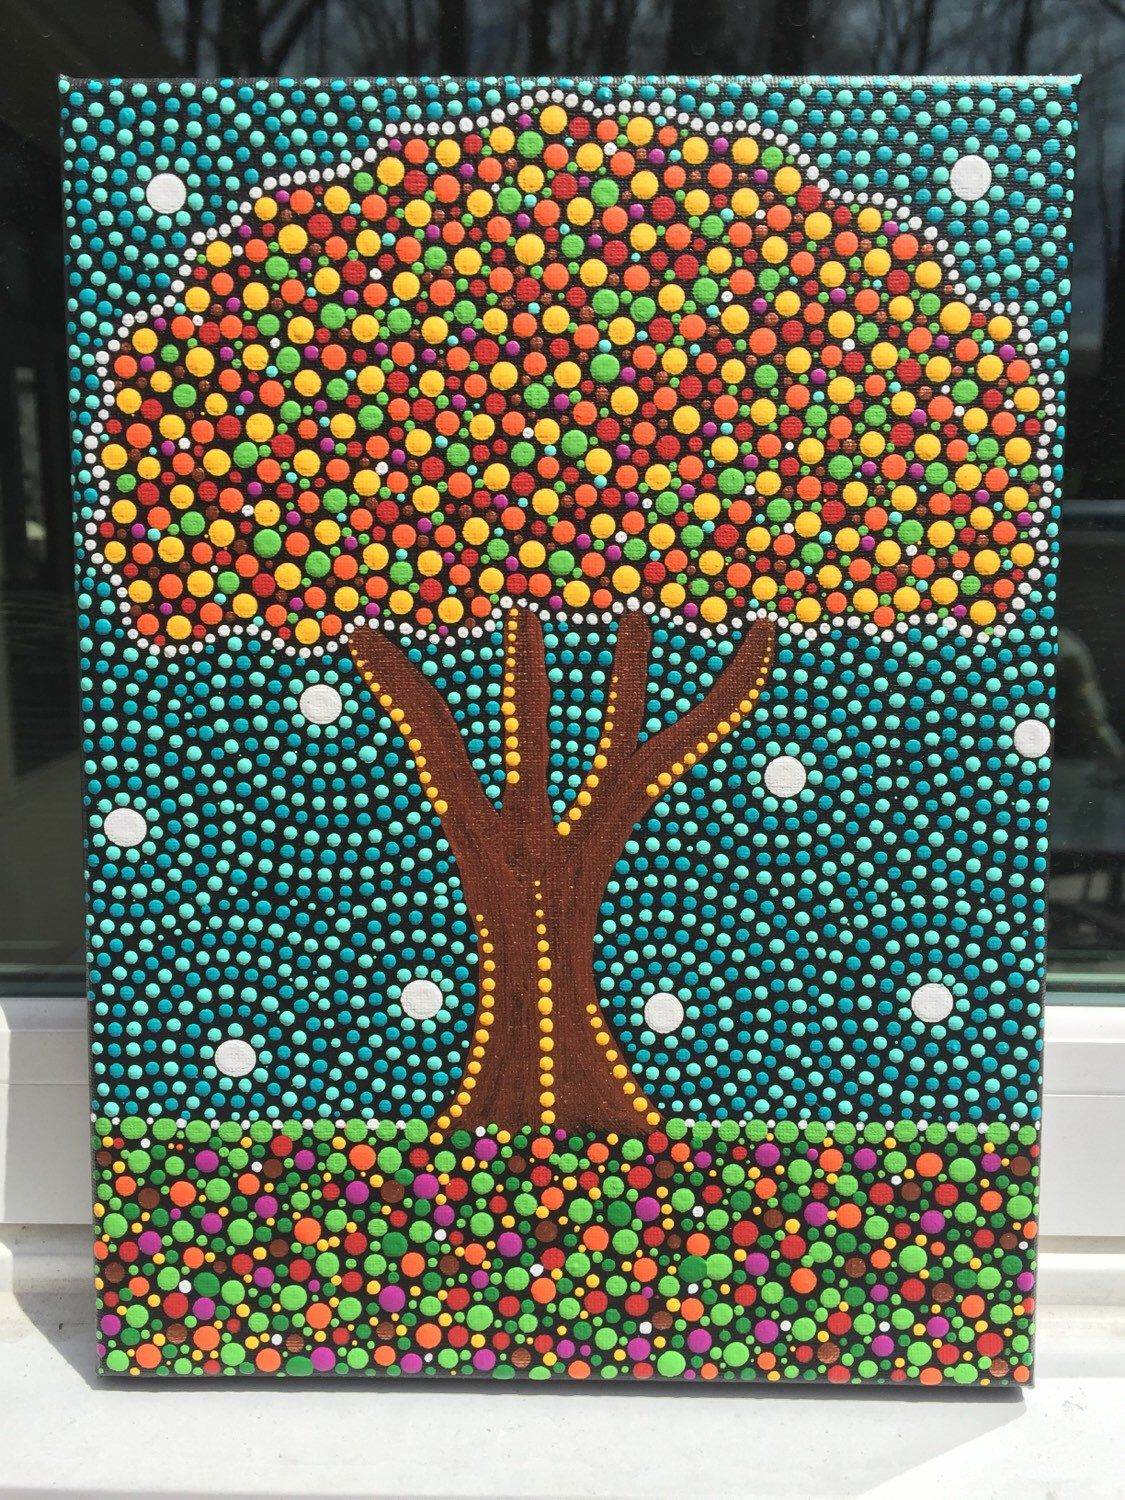 9x12 Inches Skittles Tree Dot Art Dot Painting Mandala